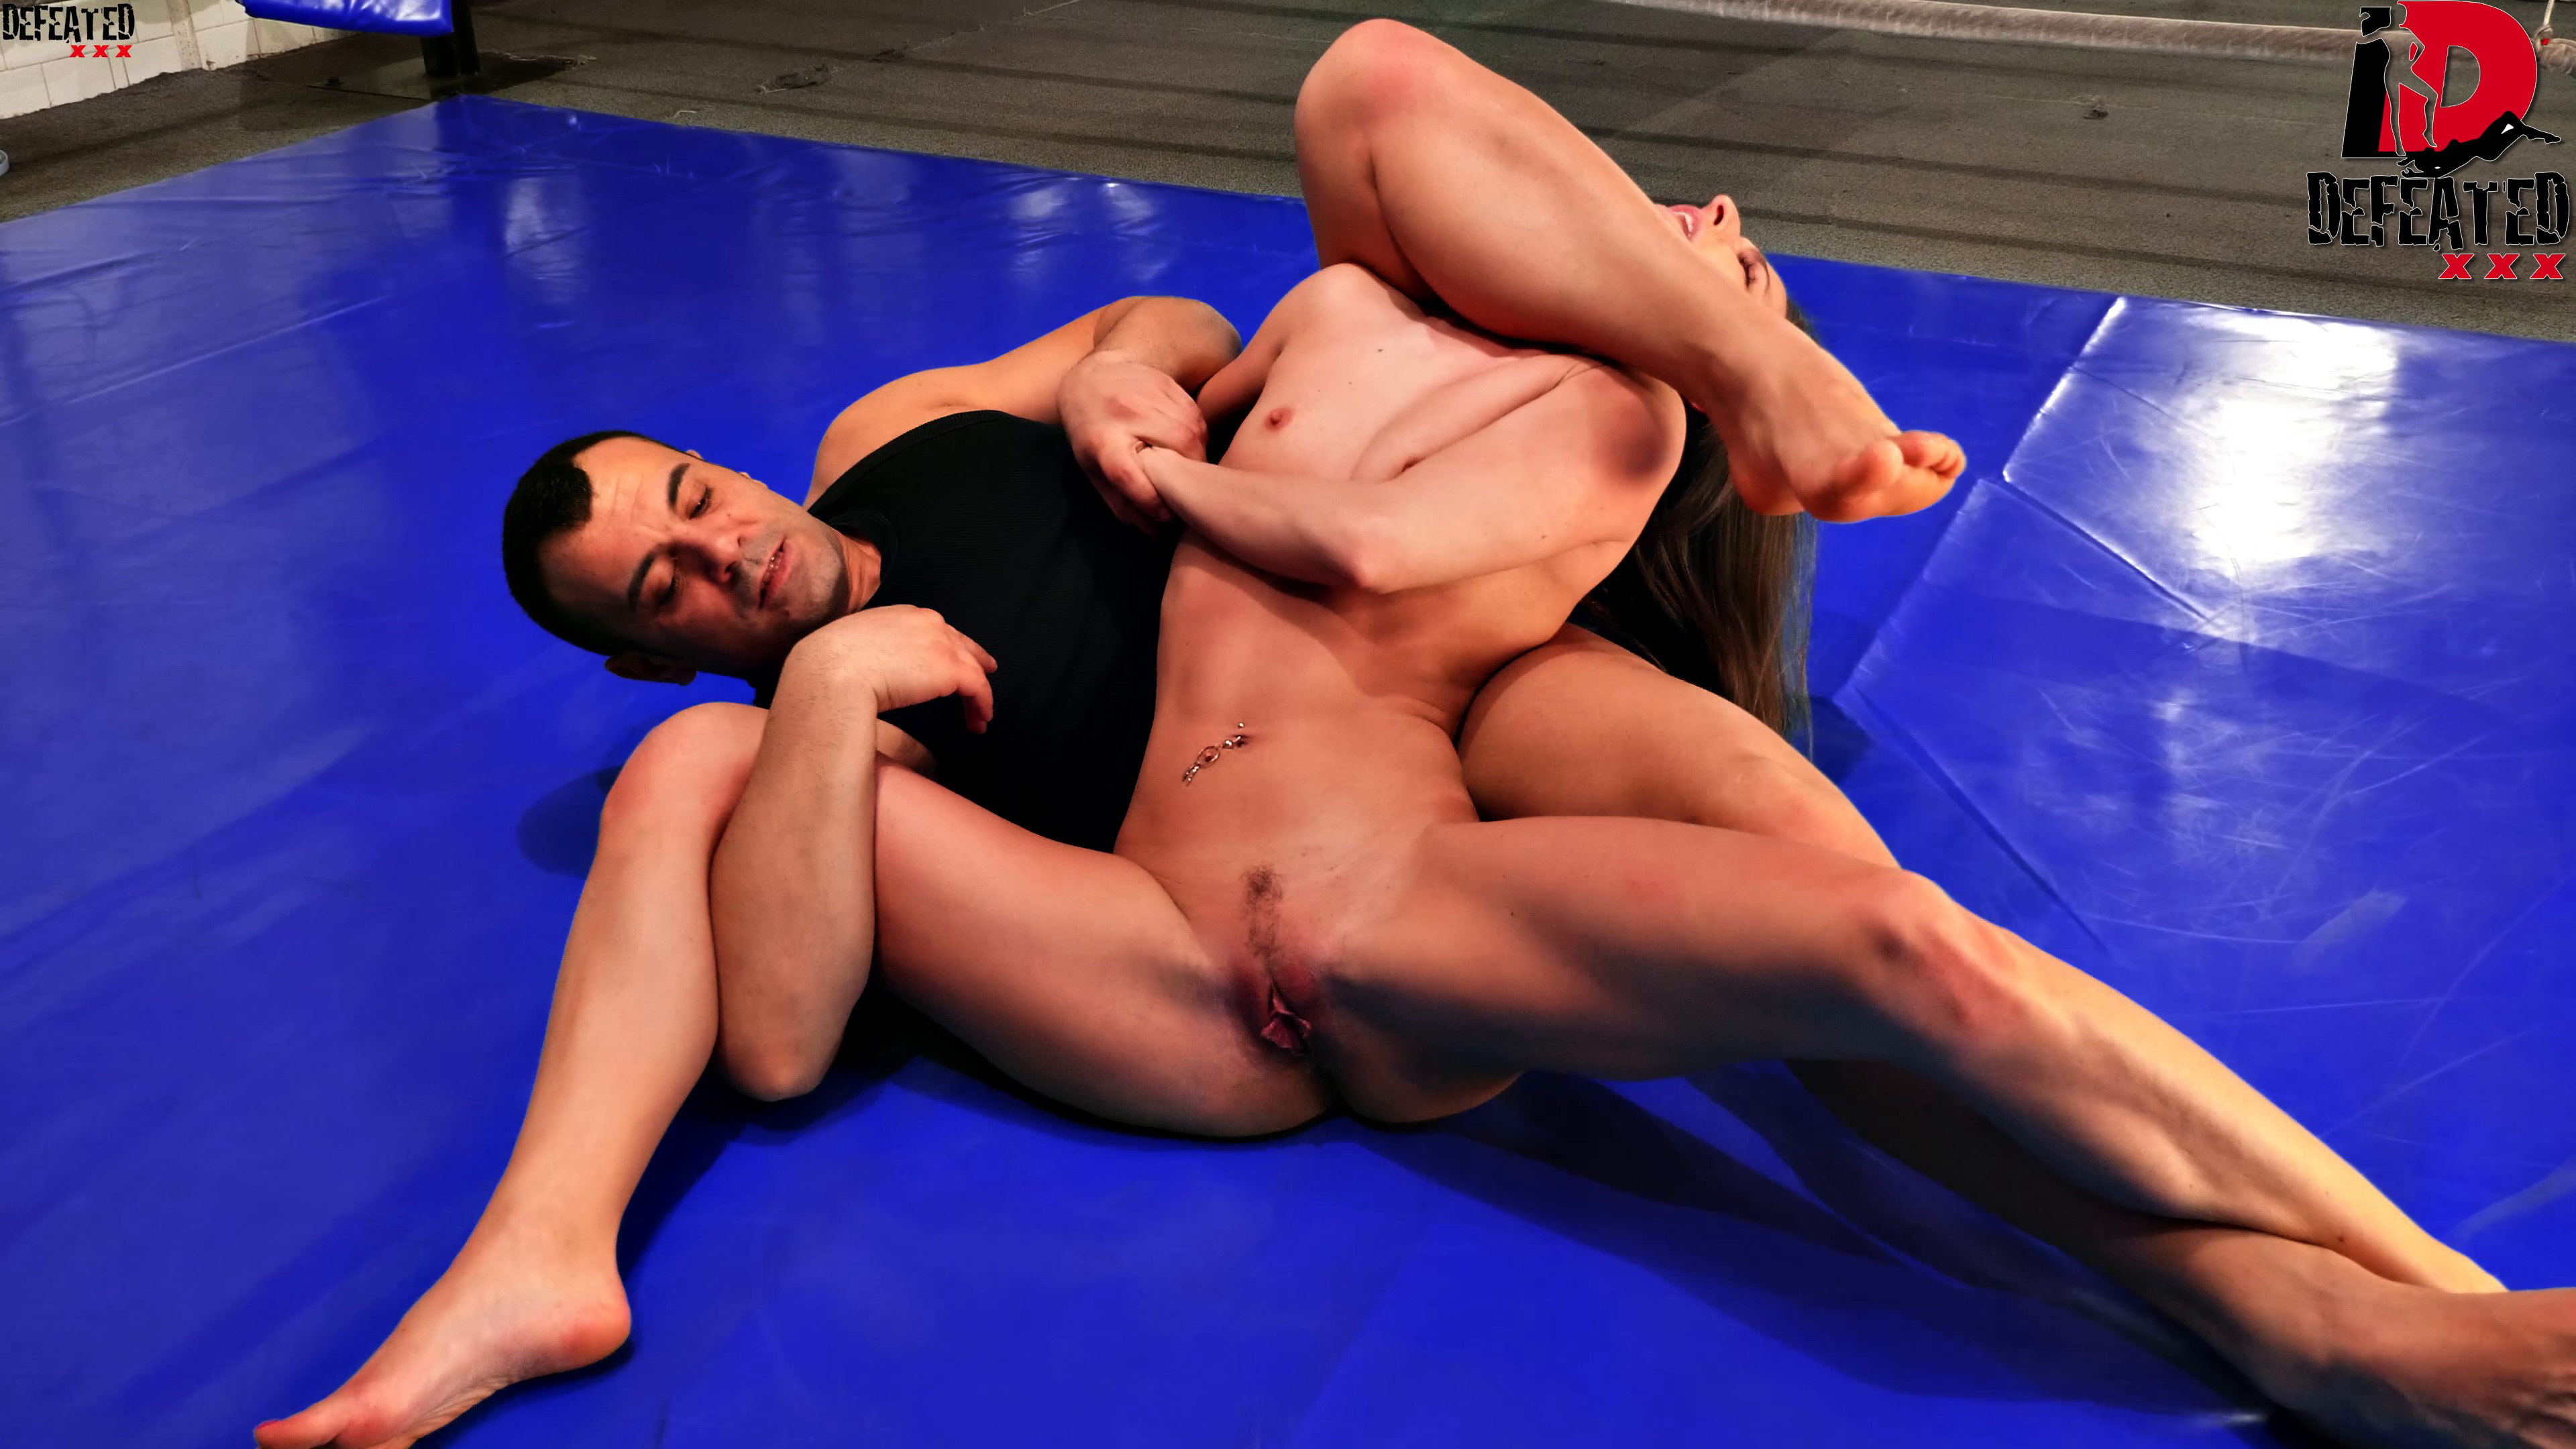 DEFEATED-MXD66---Amirah-Antonio-(133)